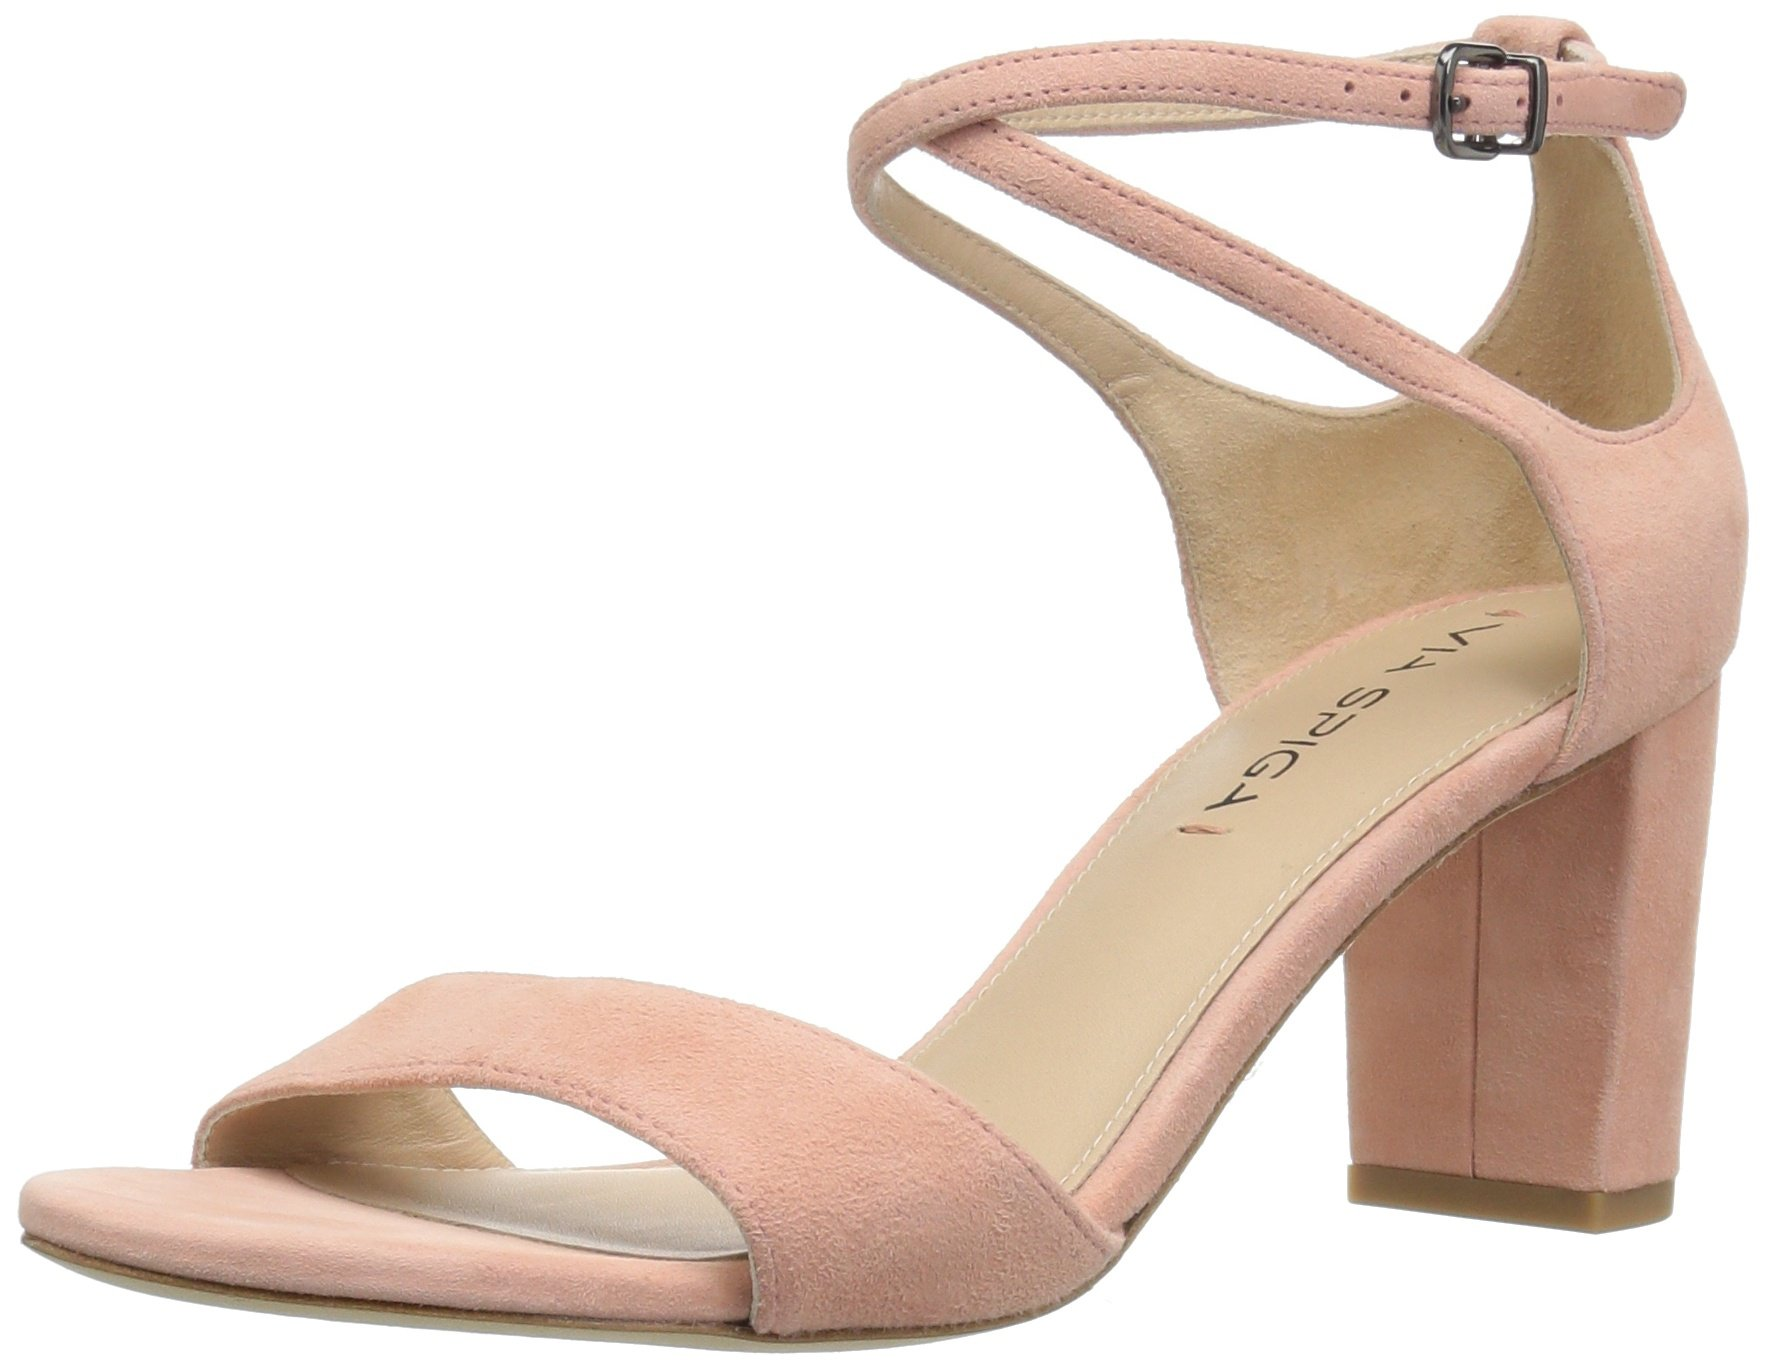 Via Spiga Women's Wendi Block Heel Dress Sandal, Salmon Suede, 8.5 M US by Via Spiga